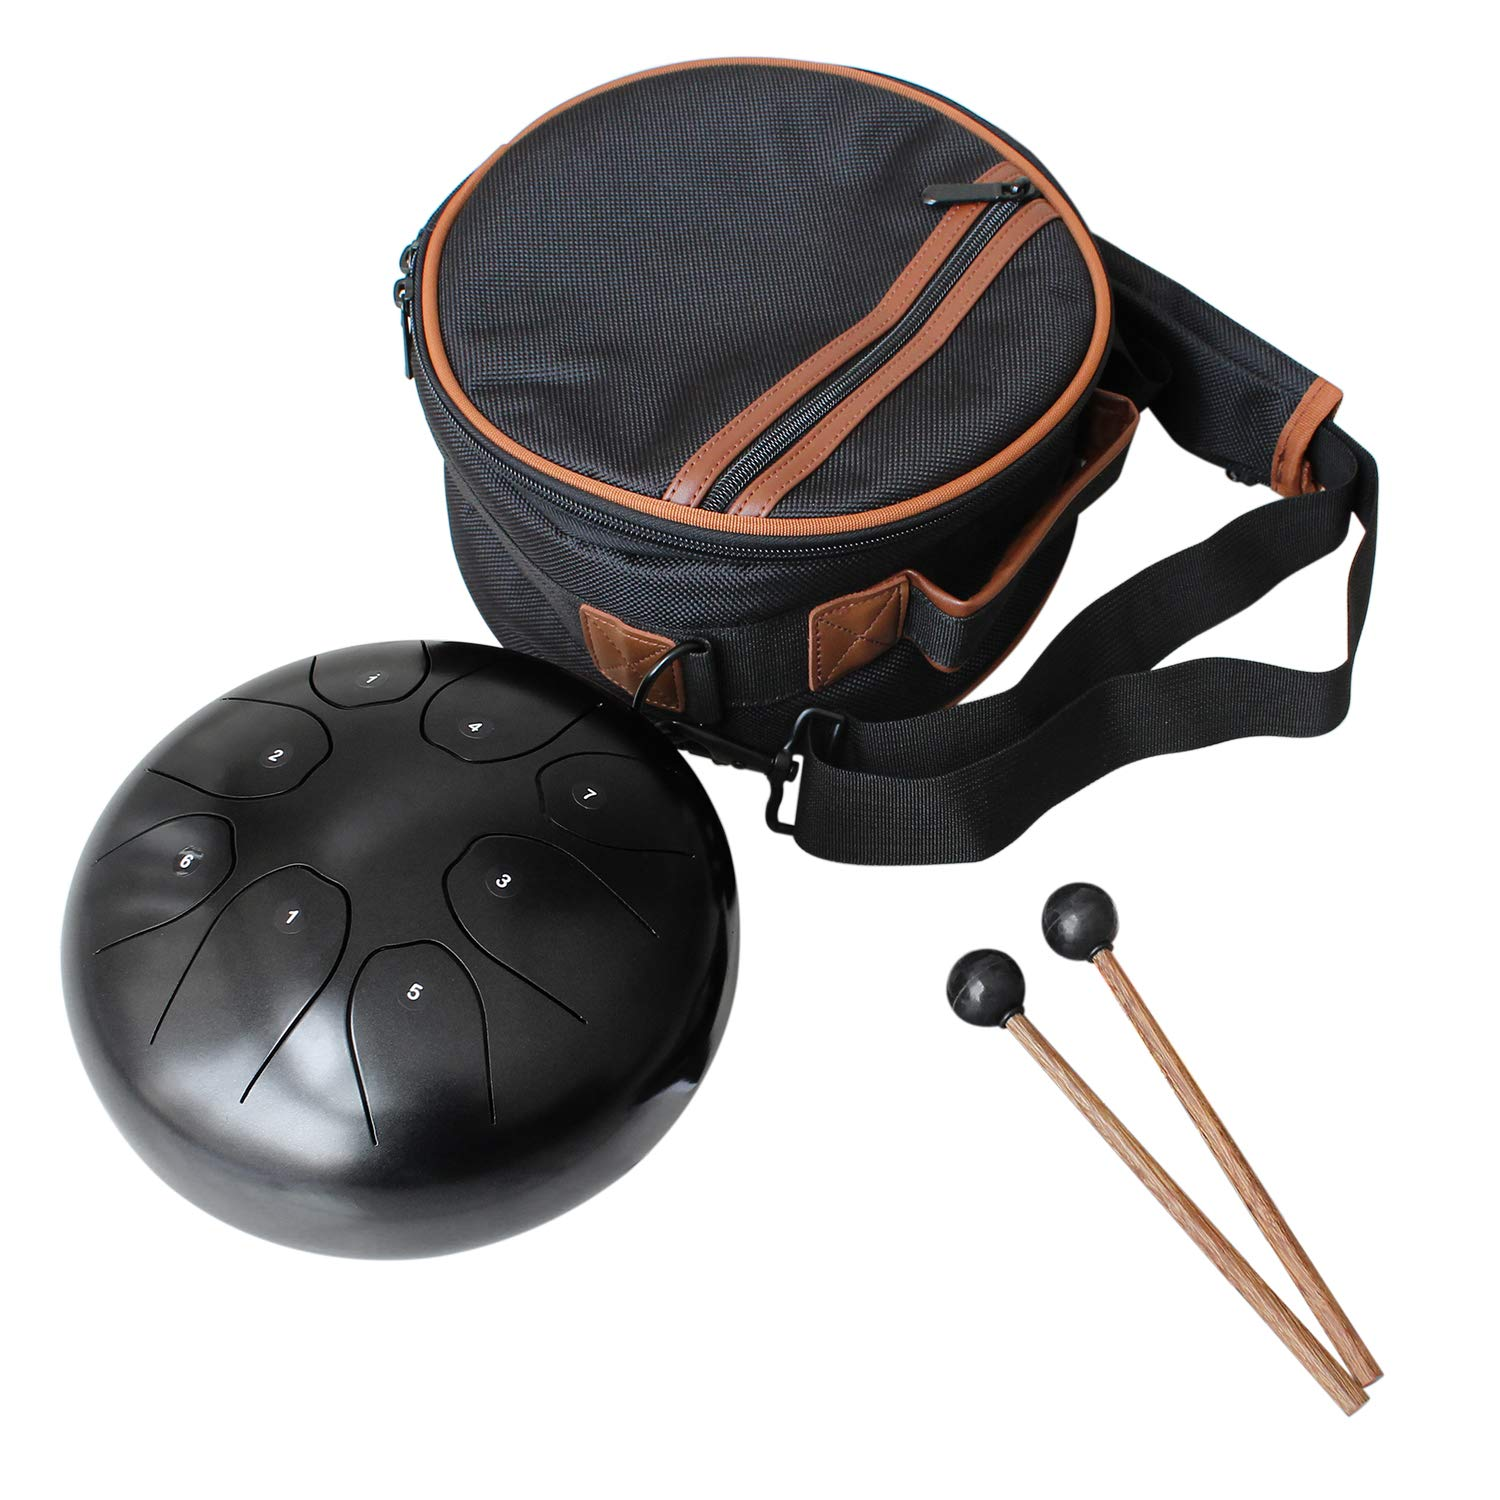 Flatsons Steel Tongue Drum Tank Drum Standard C Key 8 Notes 8 Inch Percussion Instrument with Drum Mallets Carry Bag, Black